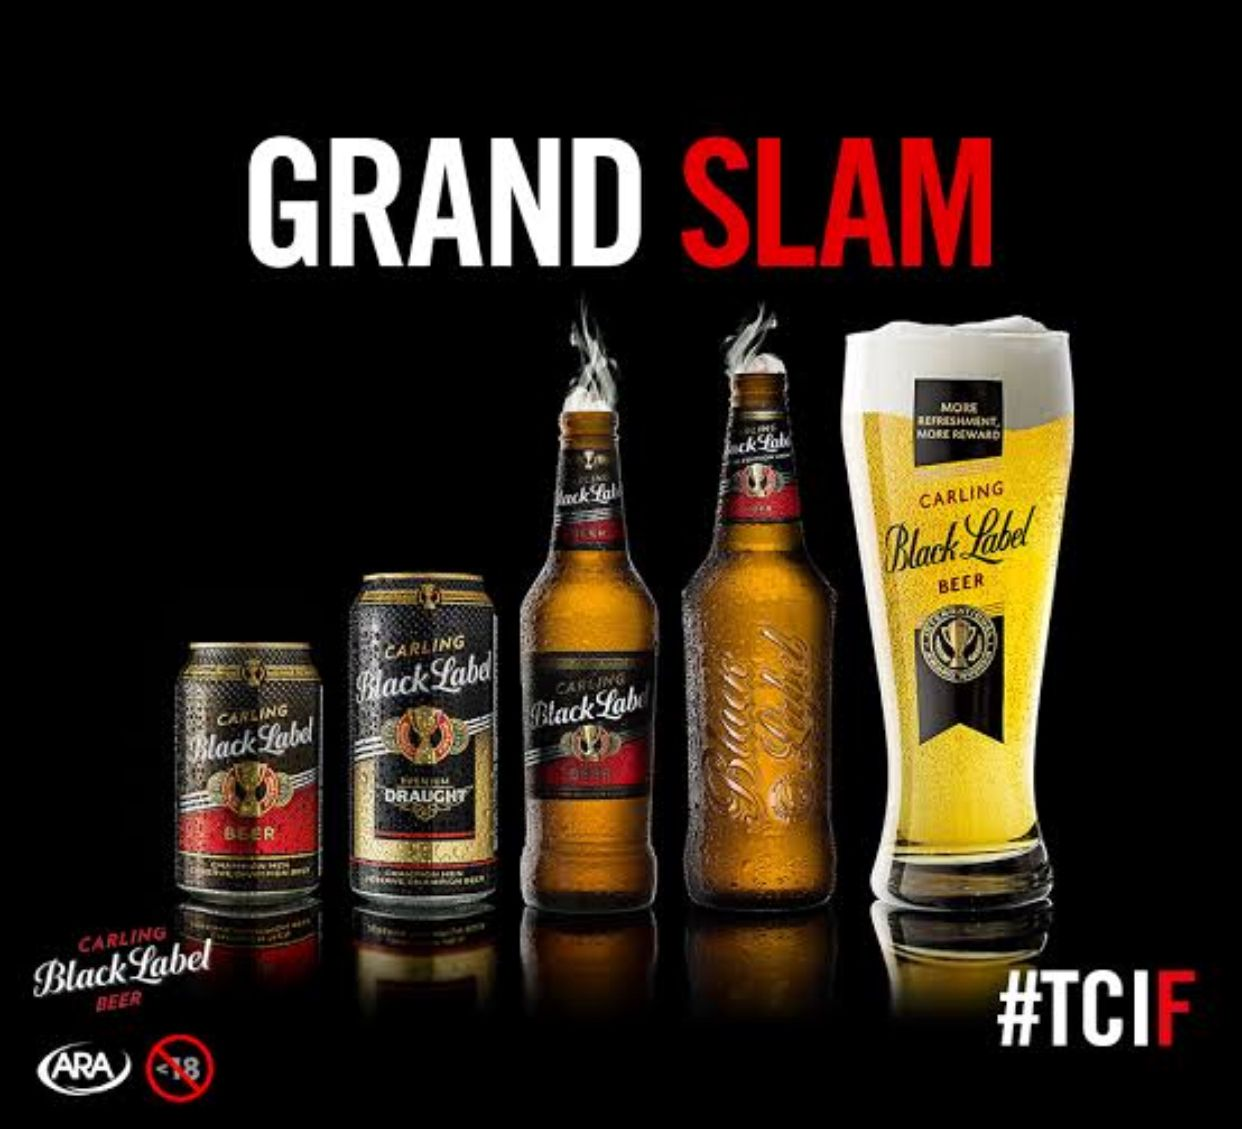 Different Shapes And Sizes Of Our Craft Beer Carling Black Label